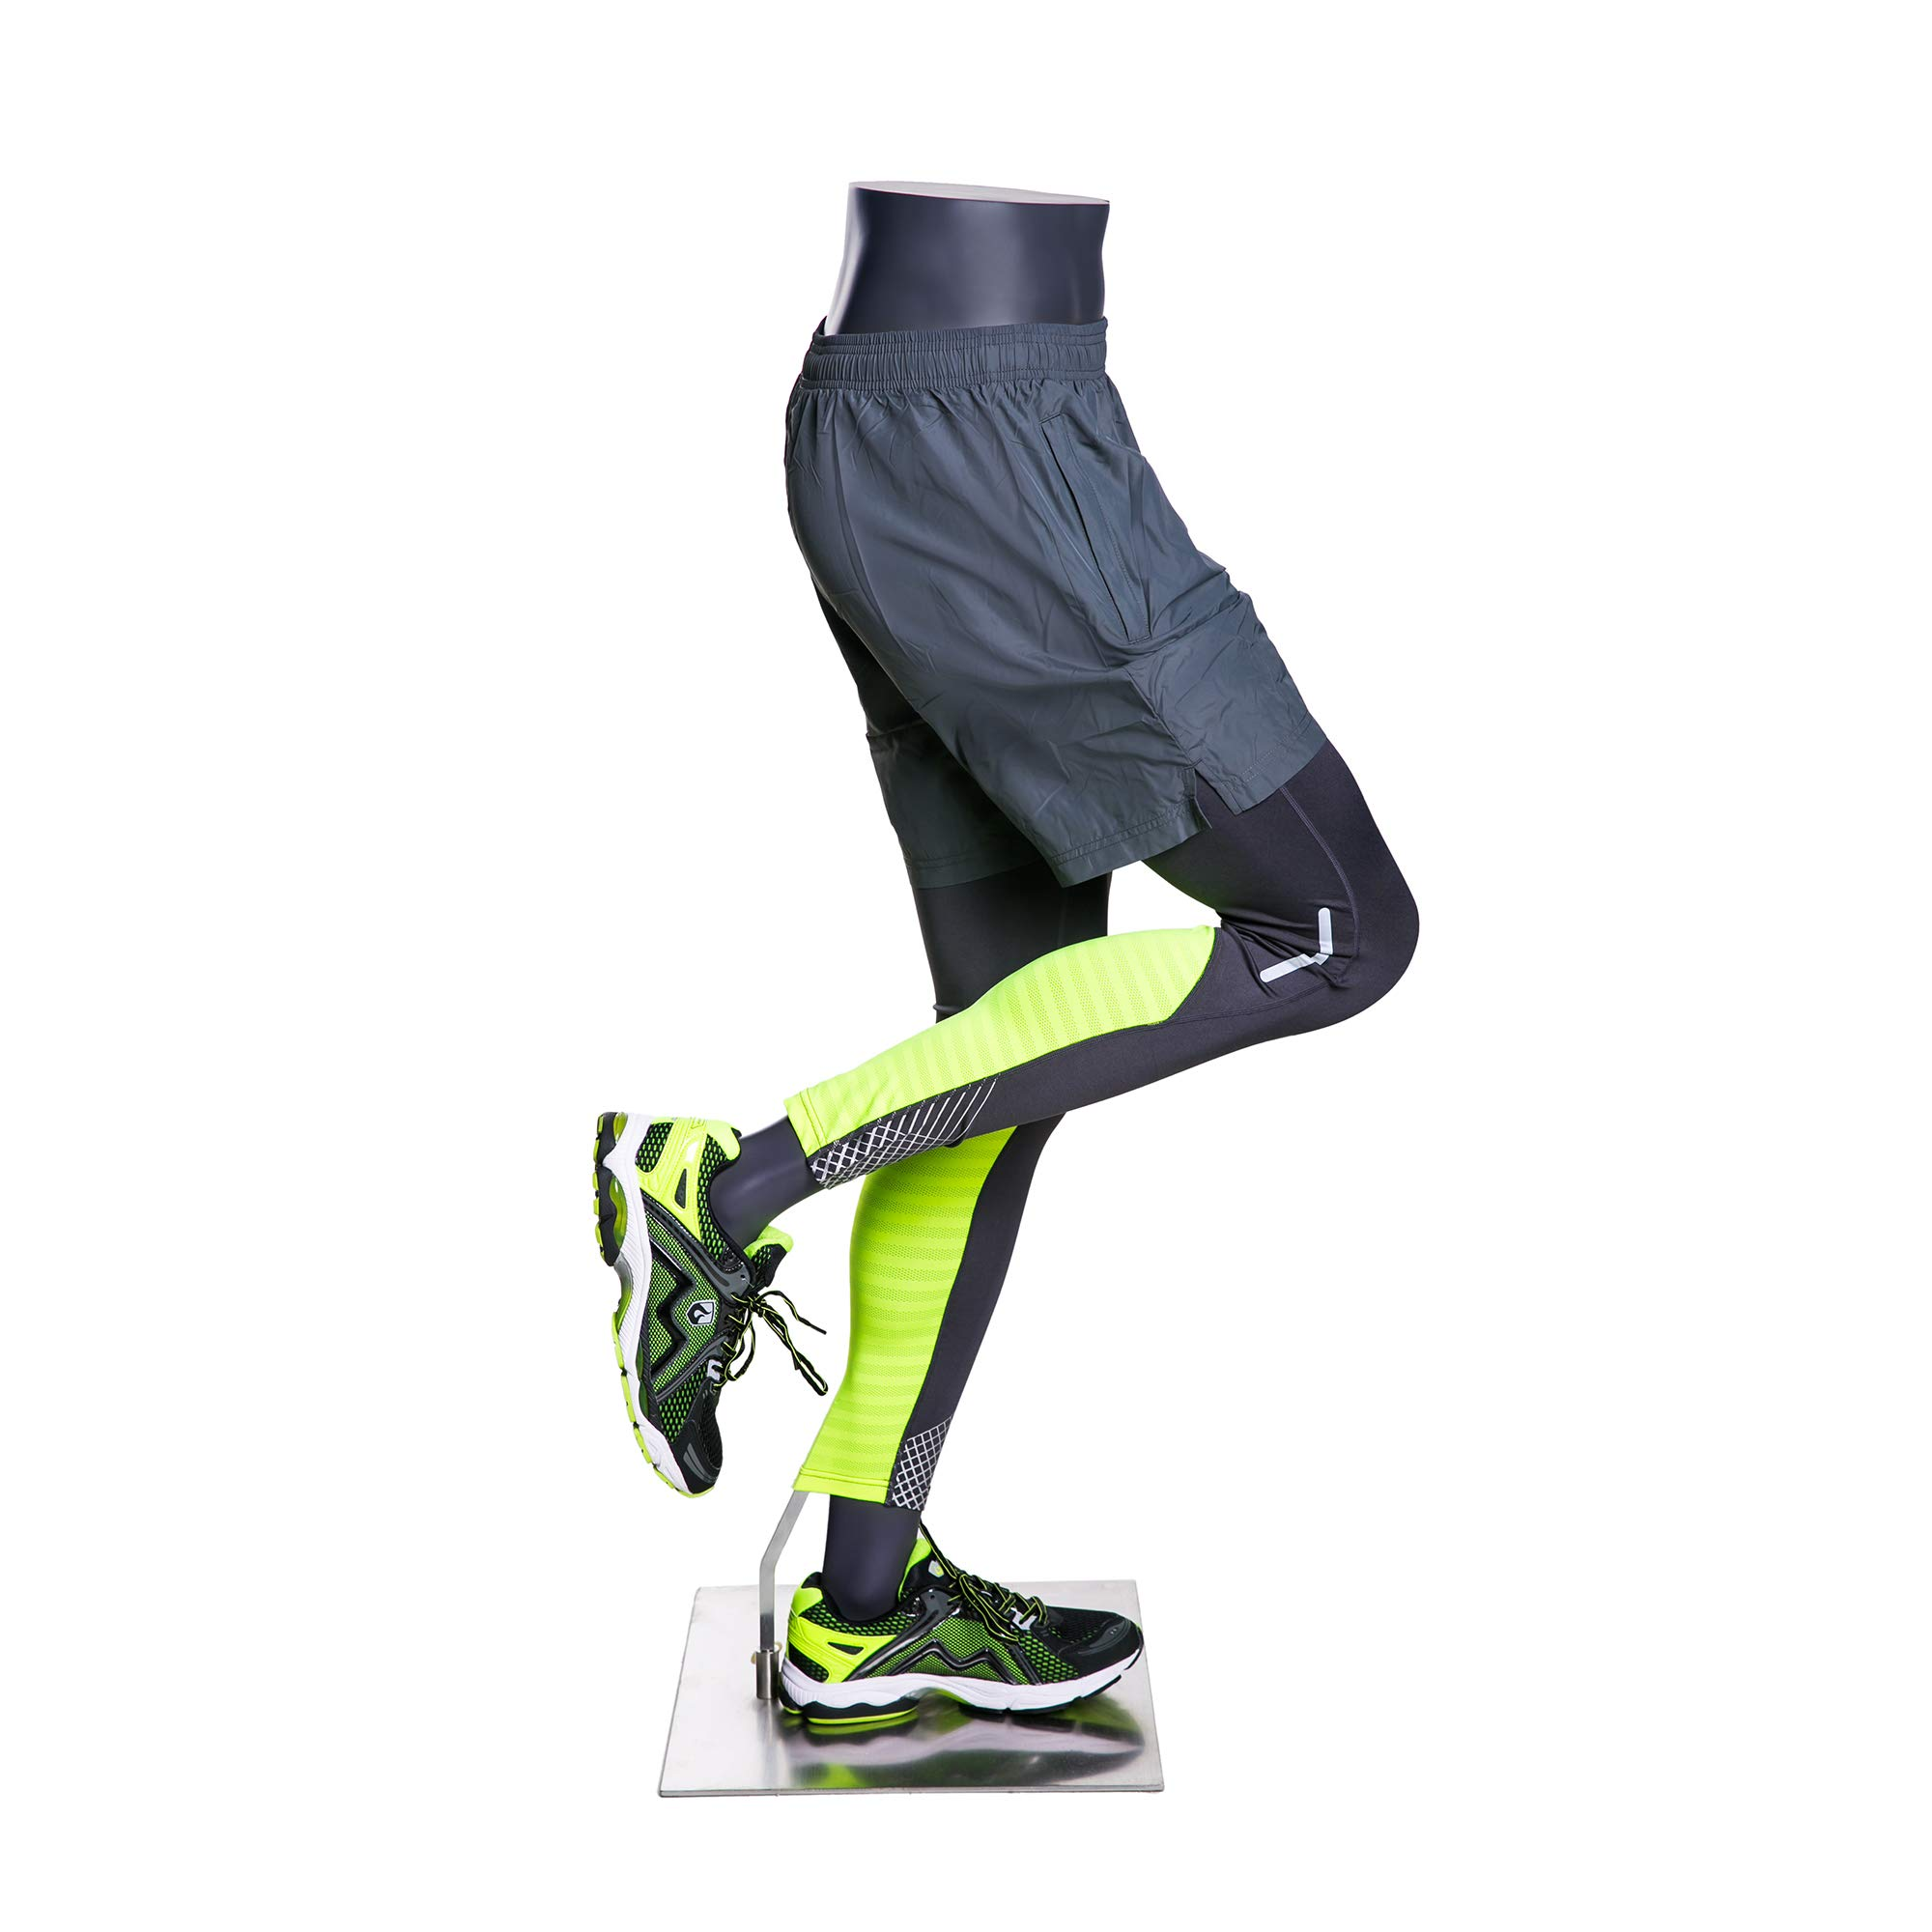 (MZ-HEF50LEG) High end Quality. Eye Catching Male Headless Mannequin Leg, Athletic Style. Running Pose. by Roxy Display (Image #3)